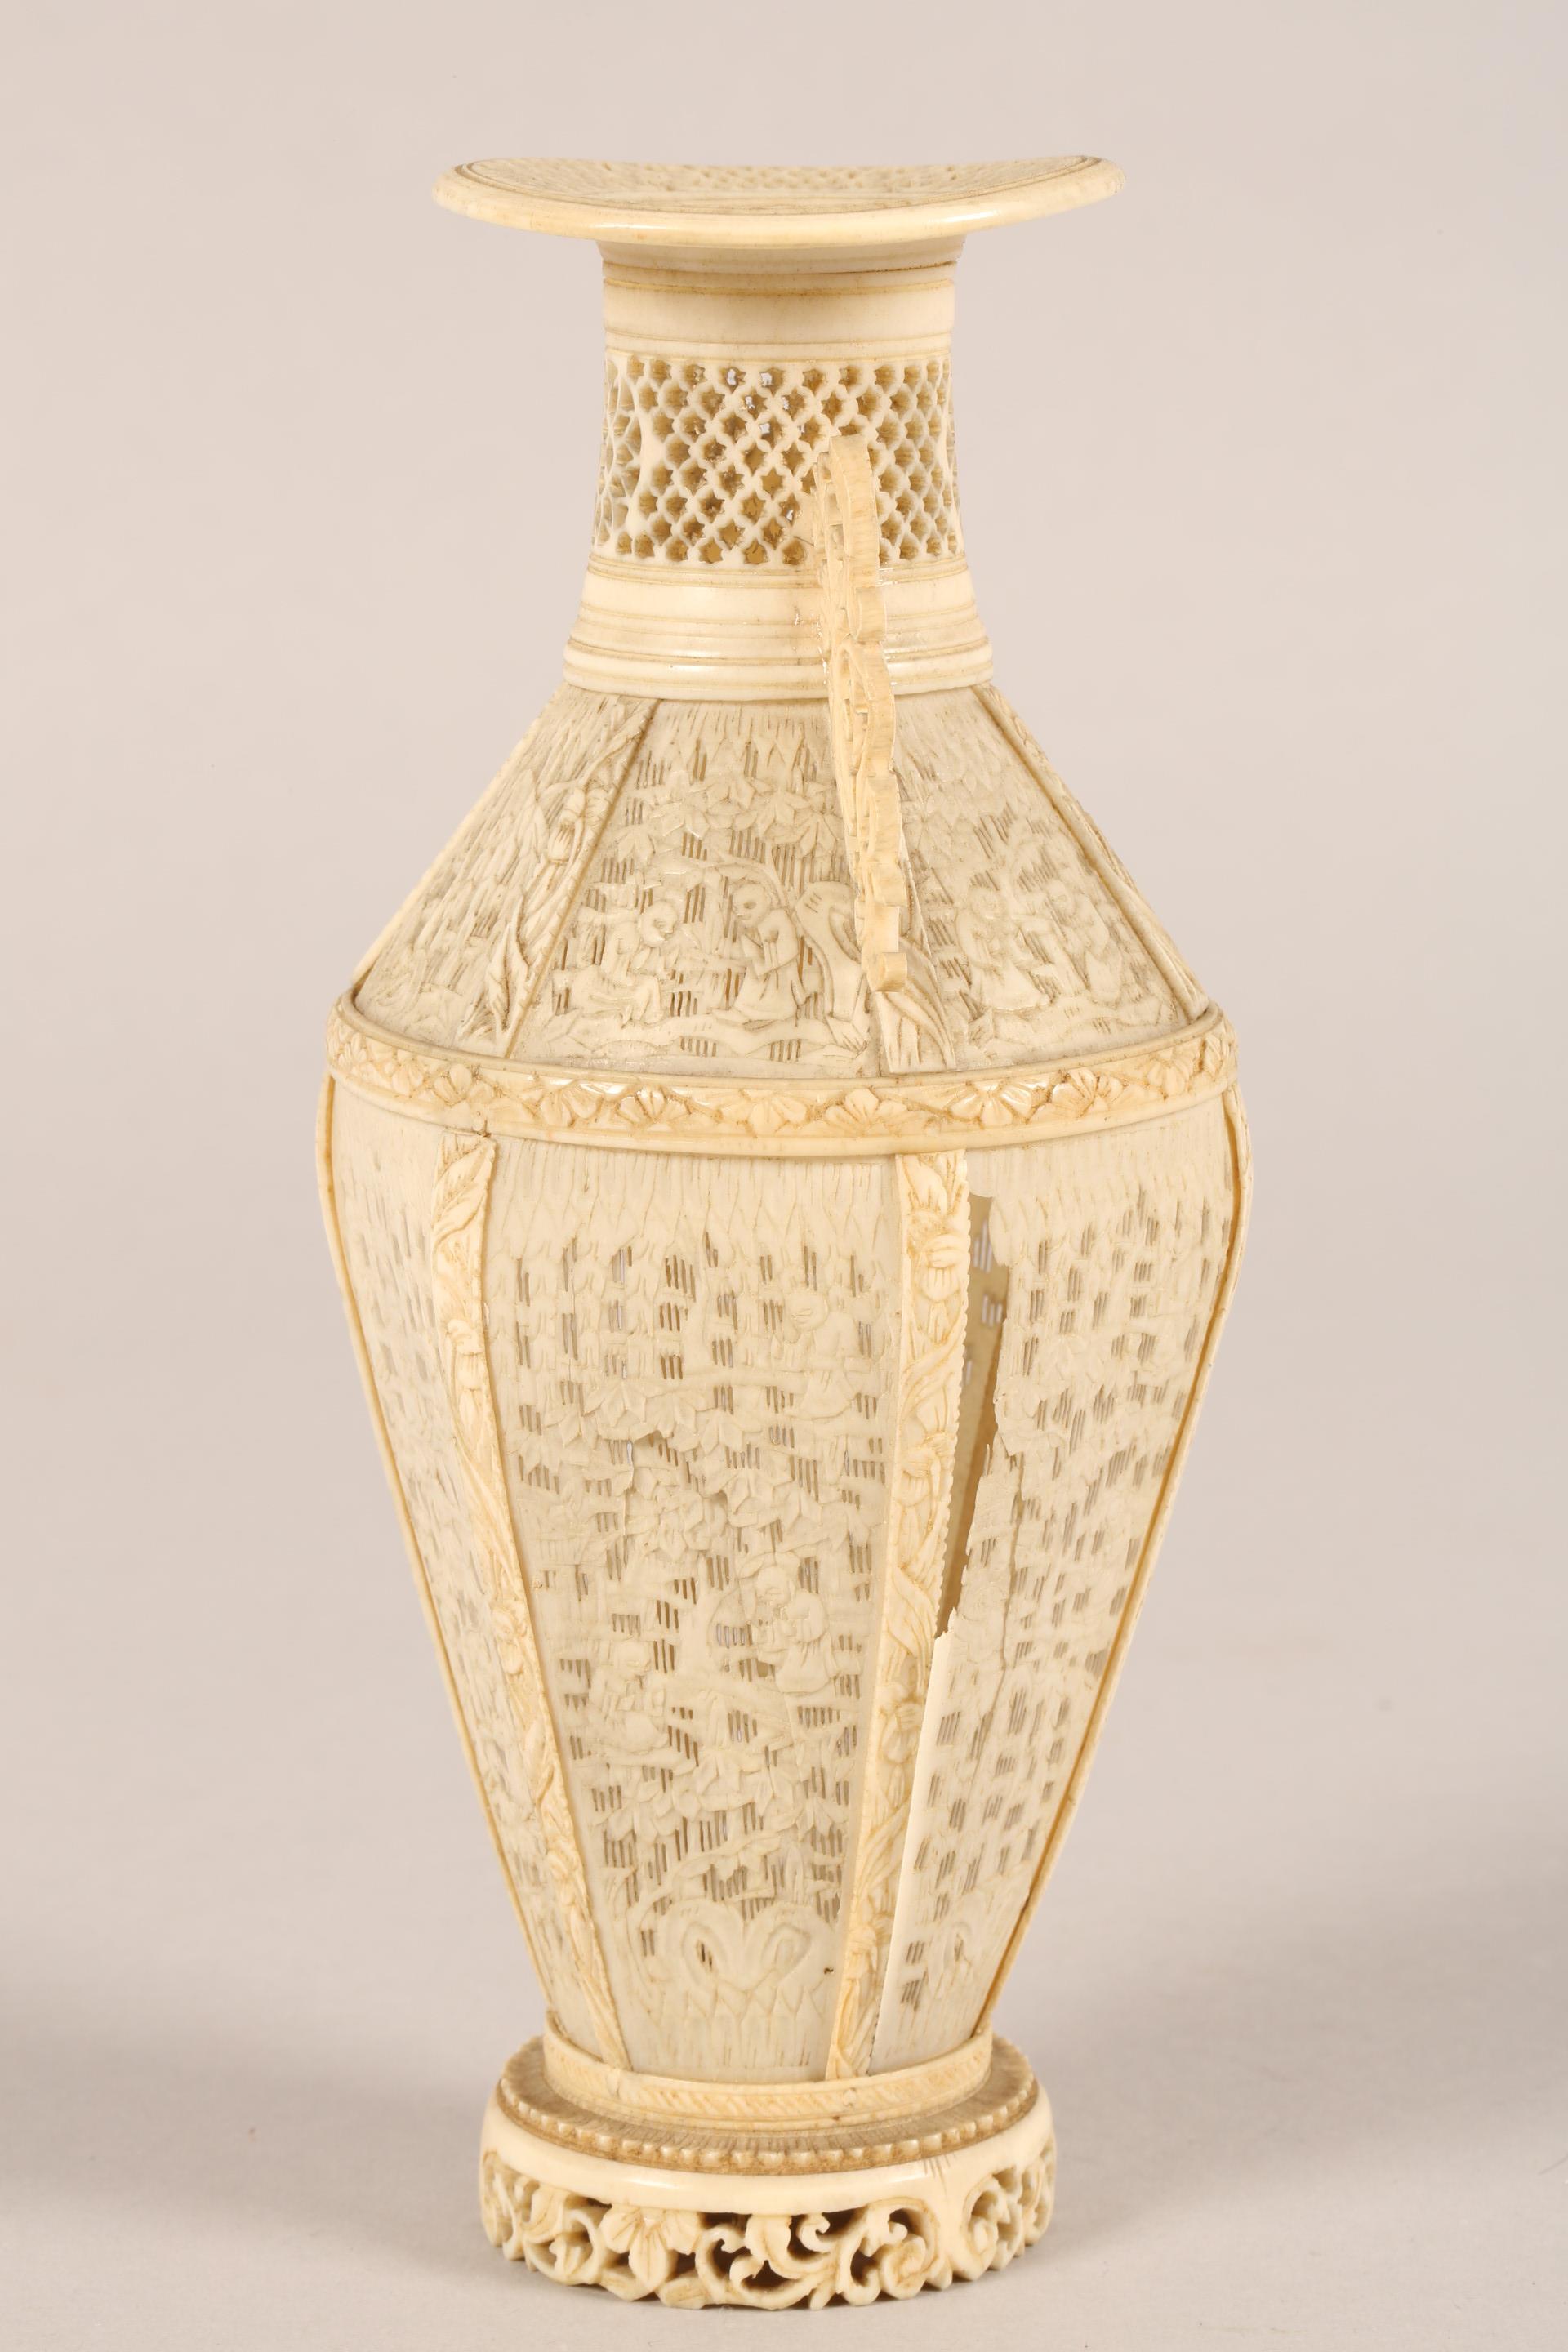 19th century Chinese Canton reticulated ivory twin handled vase (minor damages) 17.5cm high. - Image 6 of 7